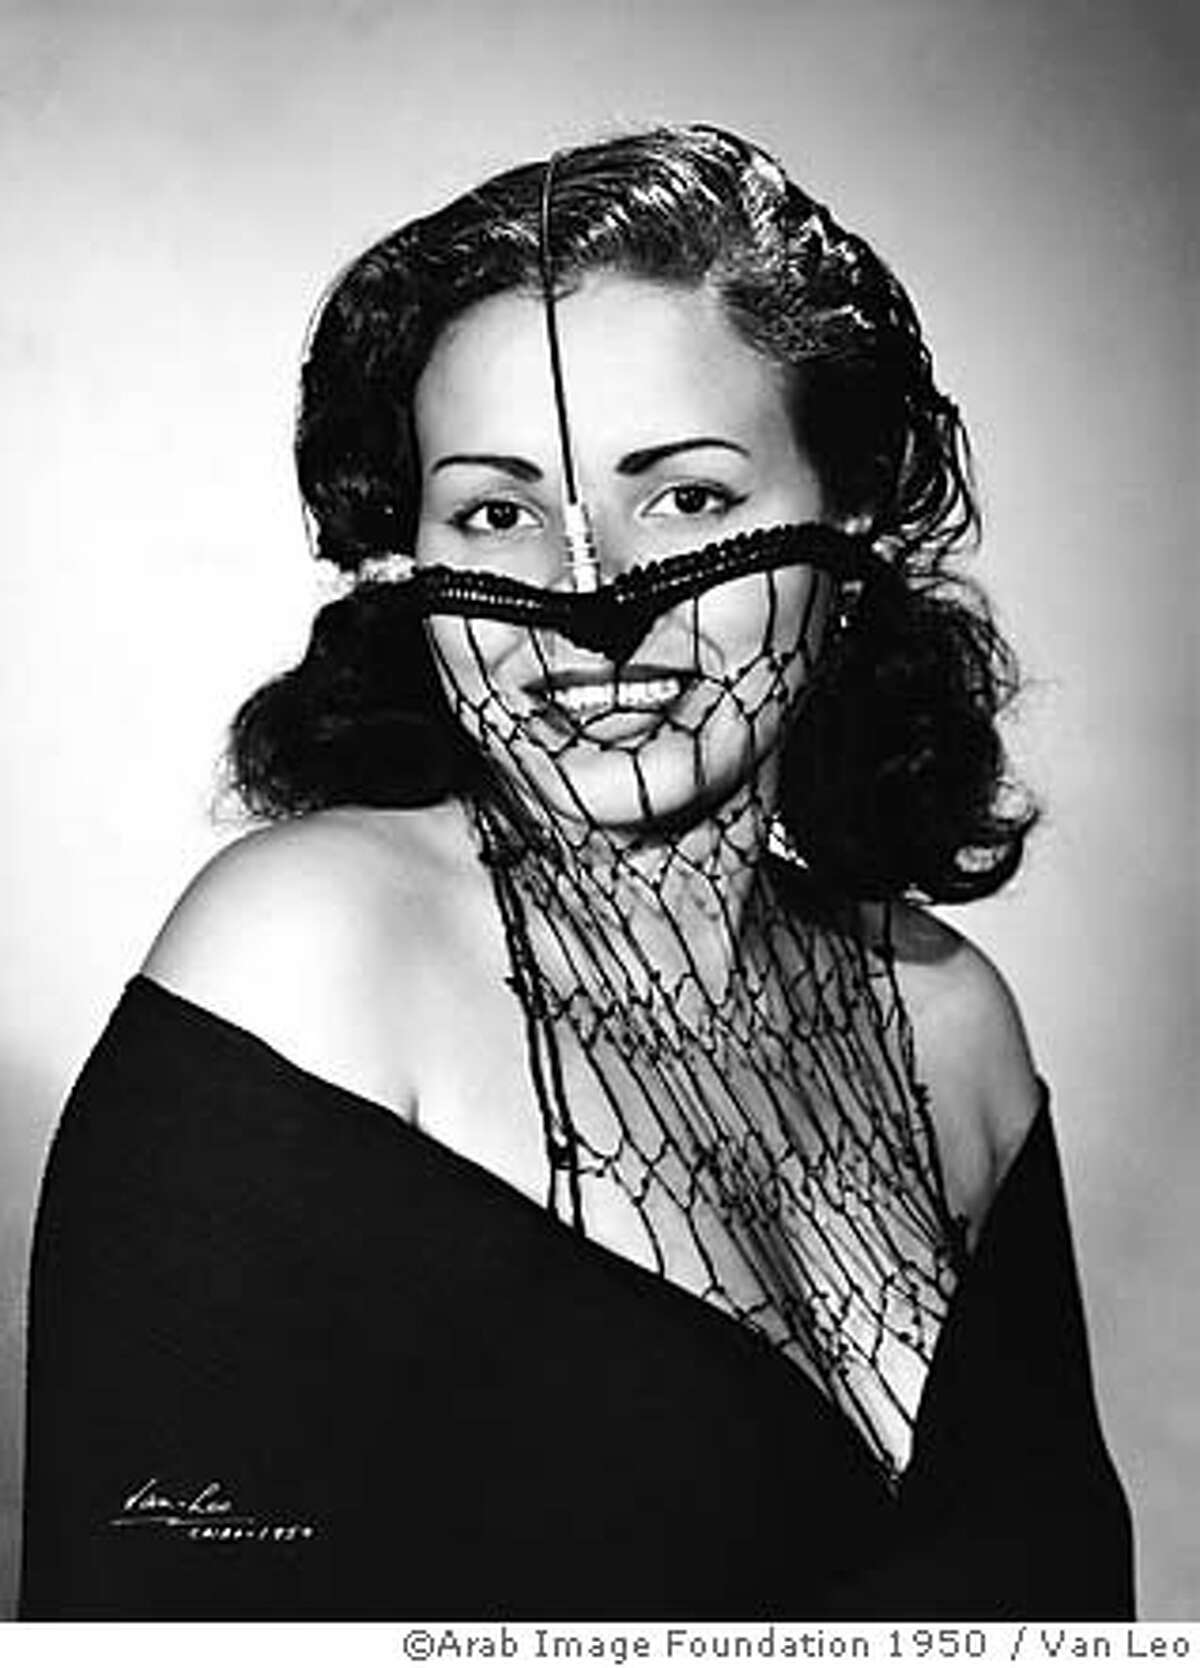 Van Leo collection veil woman with see through veil 1950